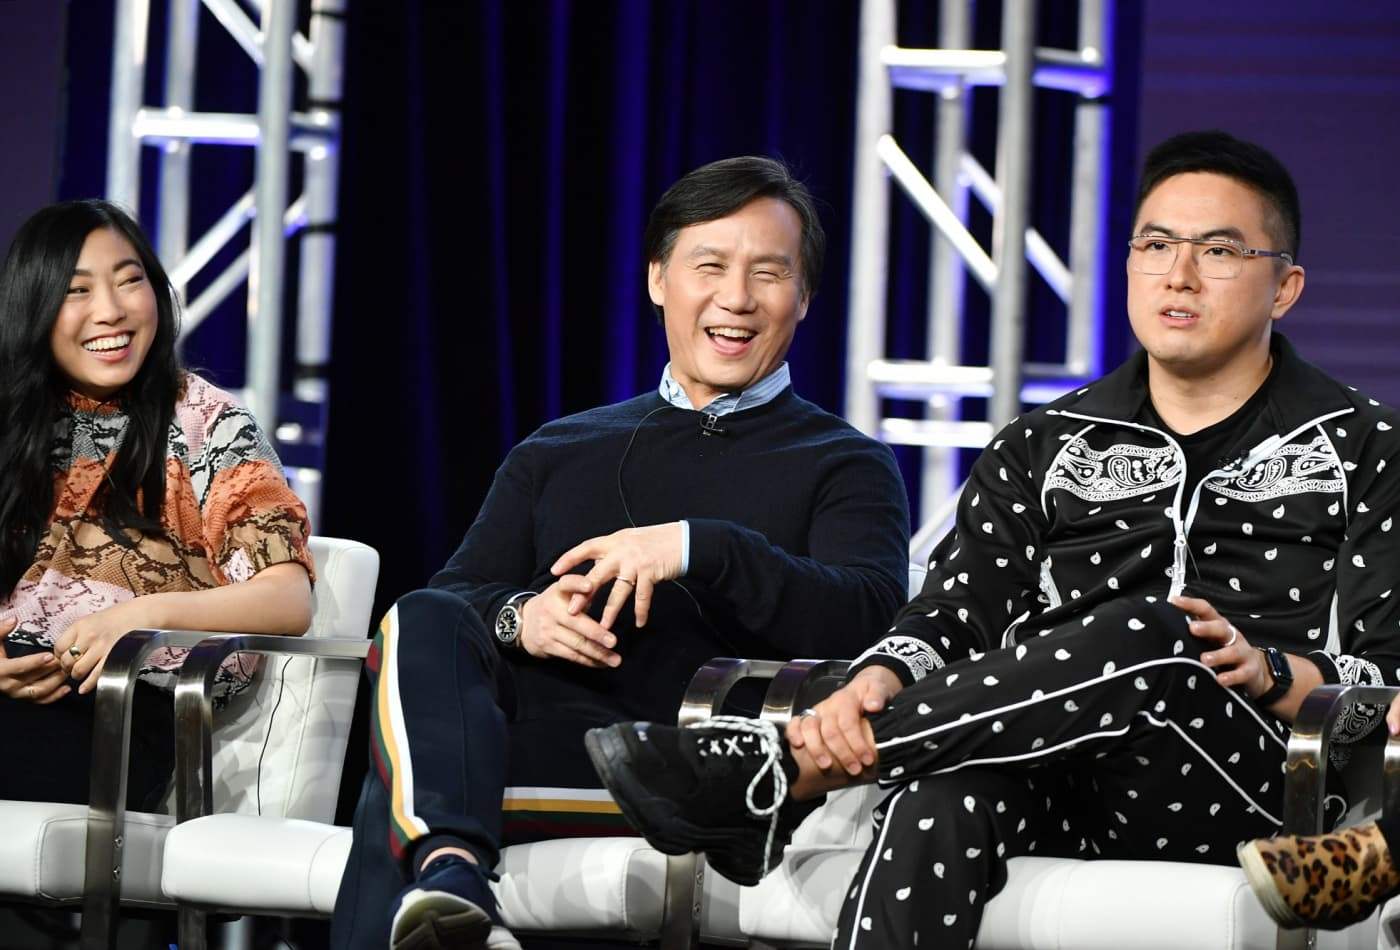 How a $500 plane ticket launched actor BD Wong to roles in 'Mr. Robot' and 'Nora From Queens'